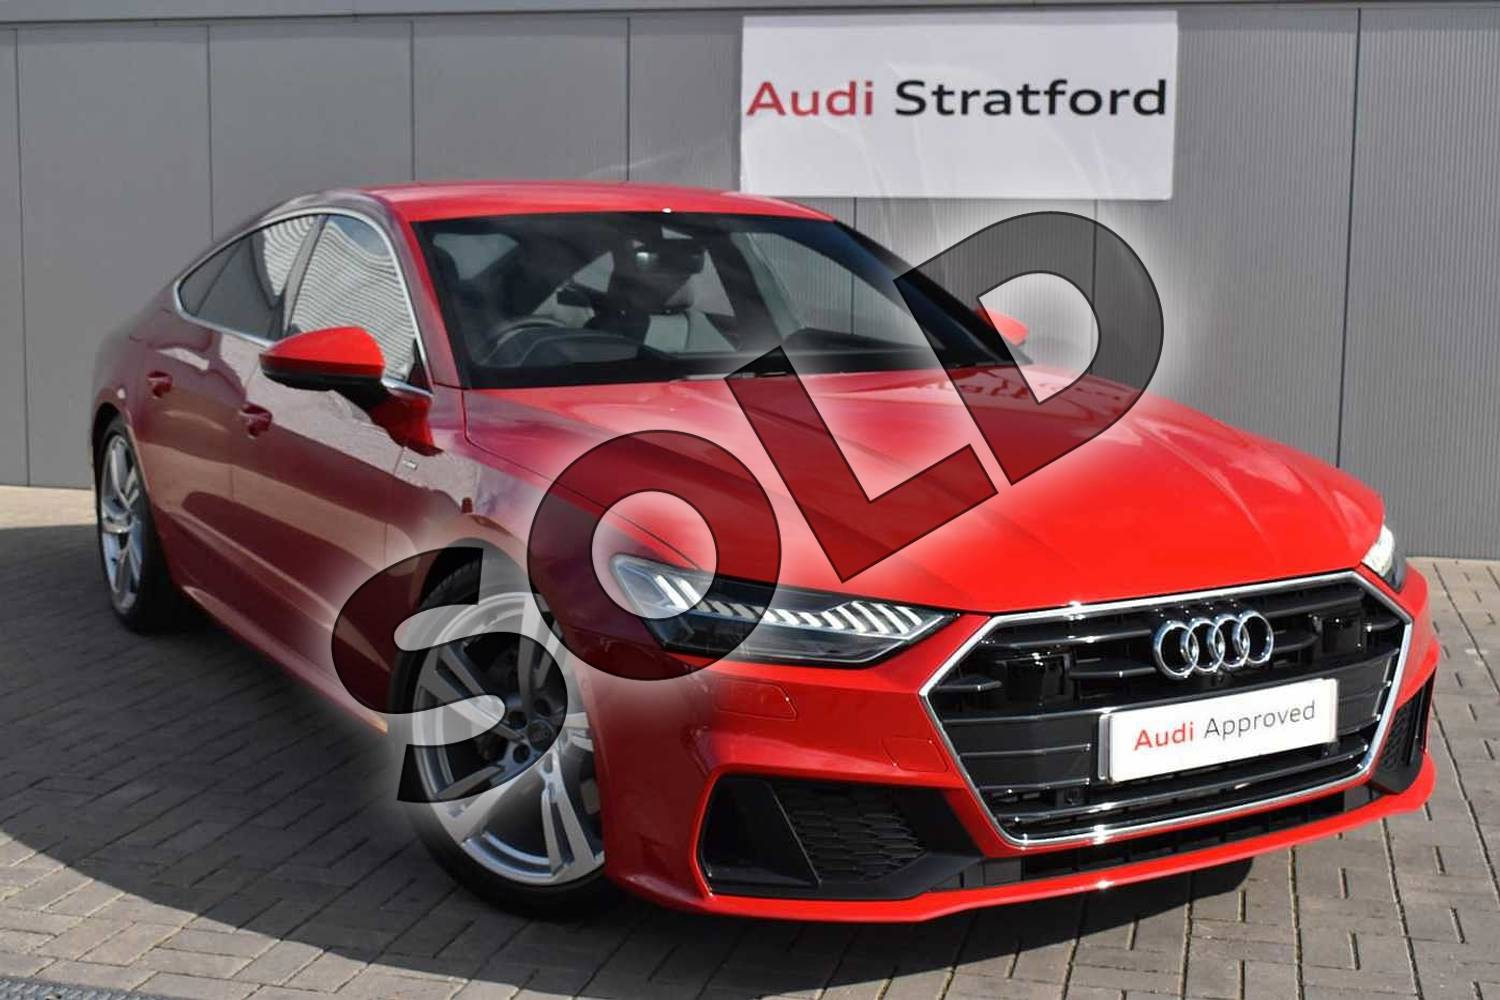 2019 Audi A7 Sportback 45 TFSI S Line 5dr S Tronic (Comfort+Sound) in Tango Red Metallic at Stratford Audi